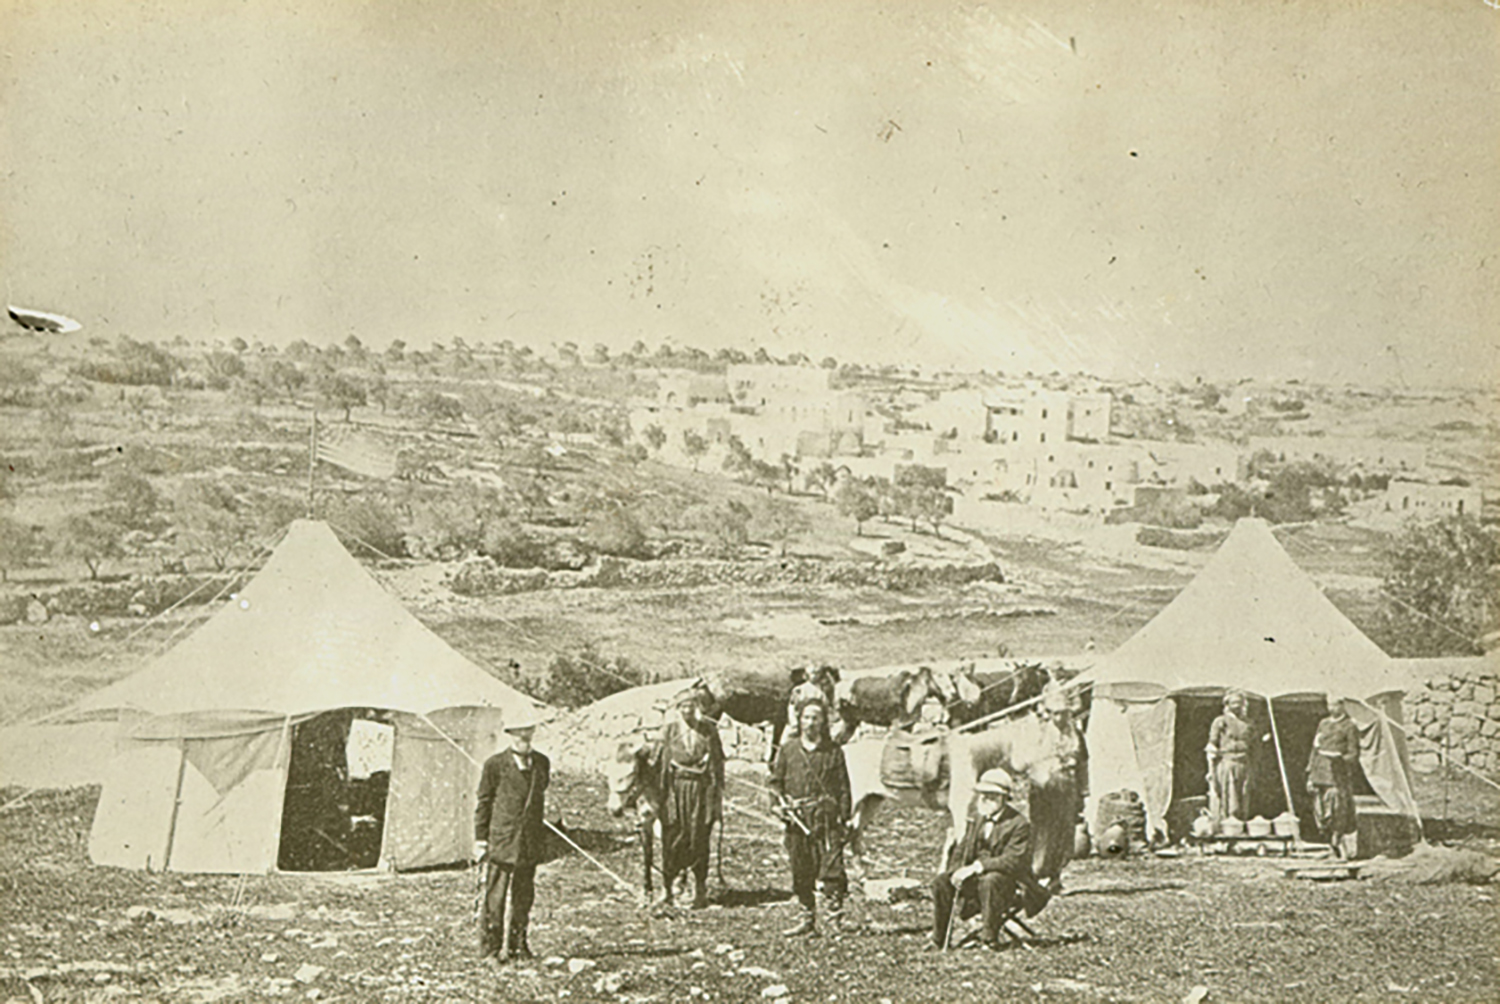 Figure 1: William Henry Benade and John Pitcairn near the Jaffa Gate, Jerusalem, 1878.